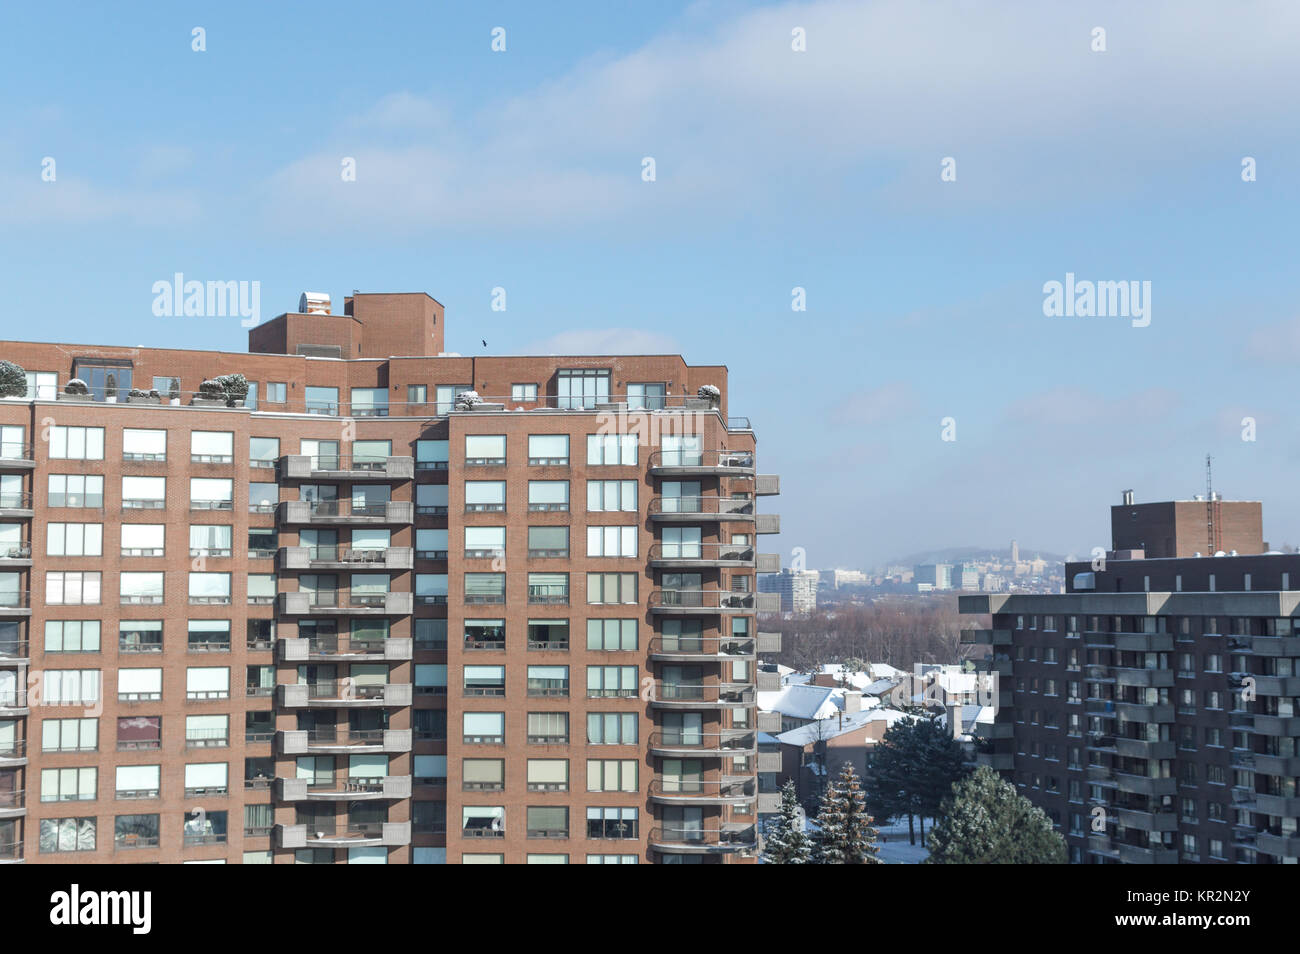 Modern condo buildings with huge windows and balconies in Montreal, Canada. Stock Photo